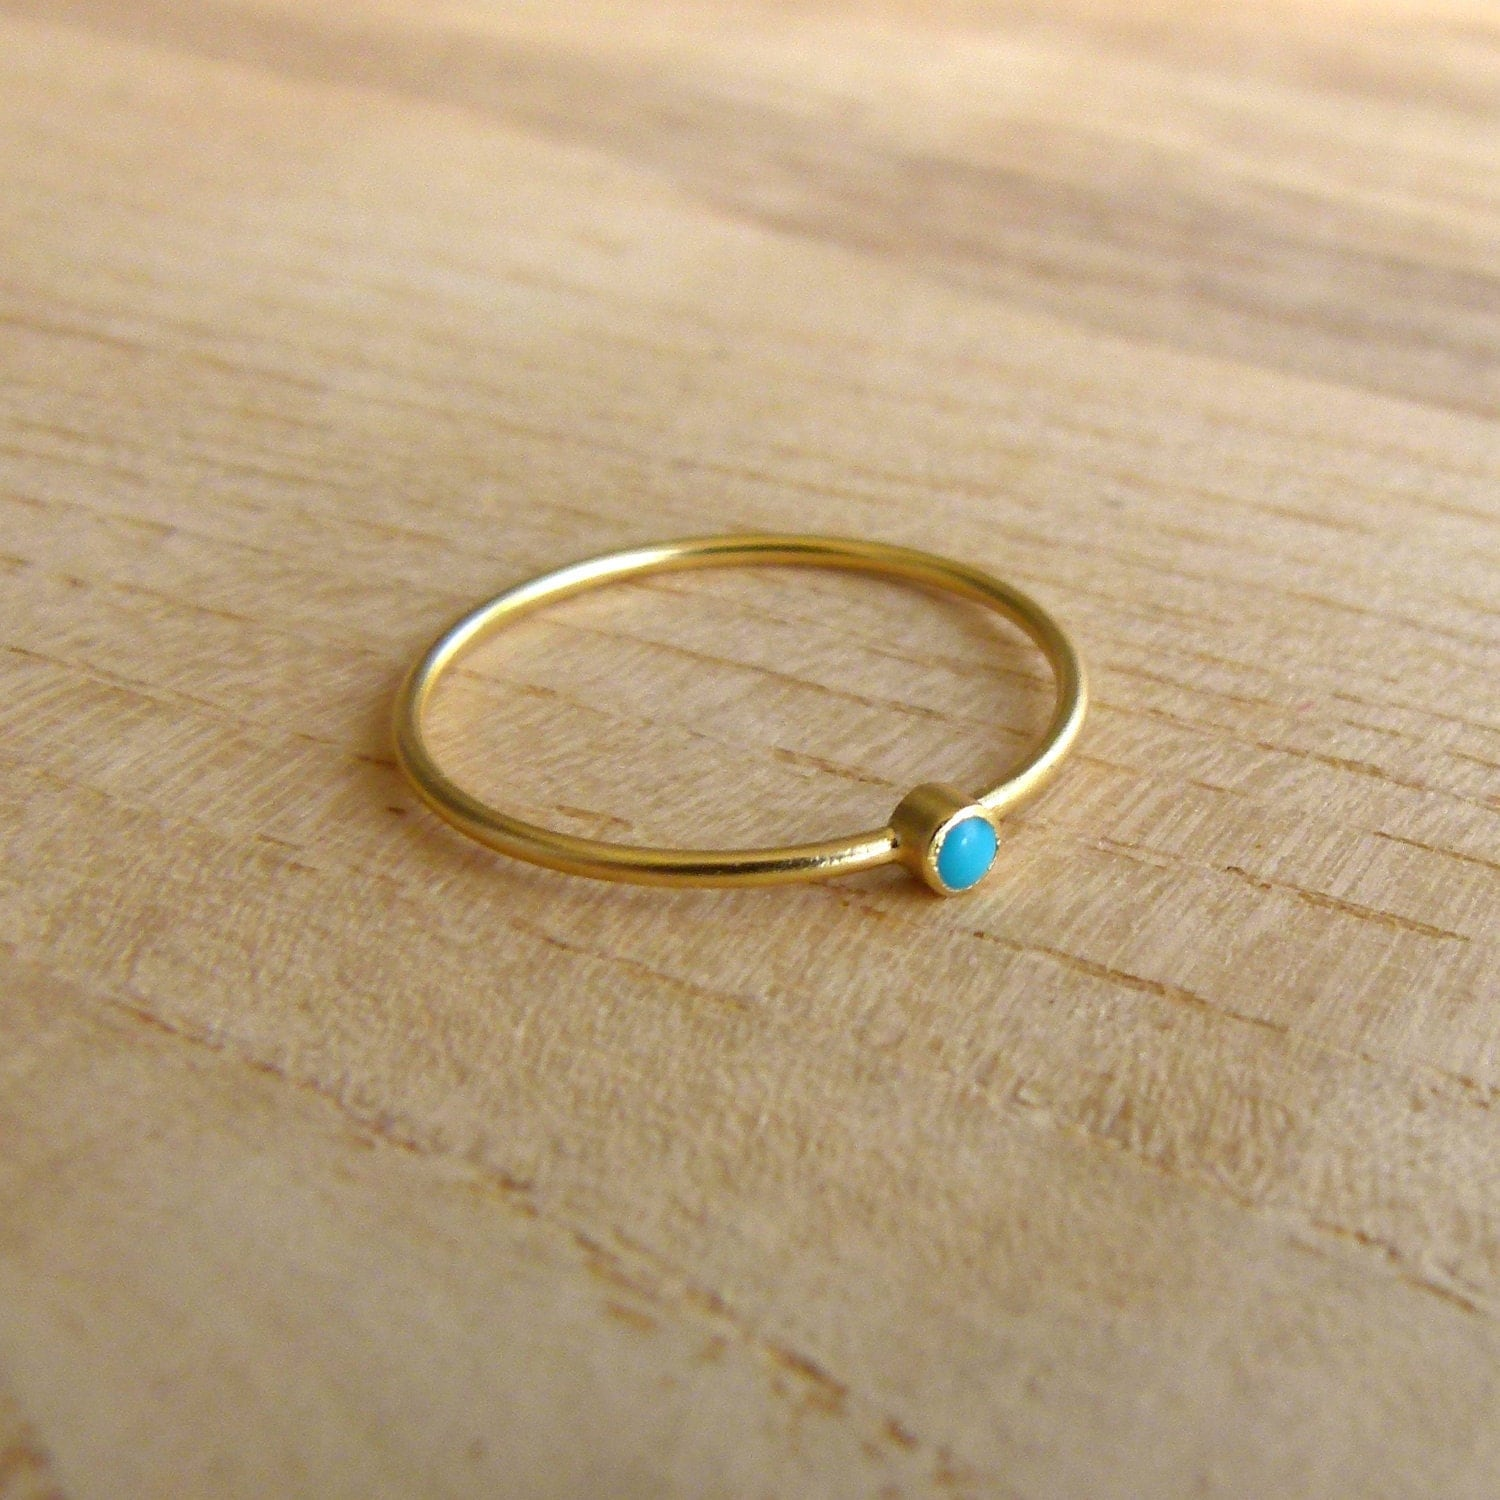 14k gold ring thin gold ring delicate gold rings by artemer